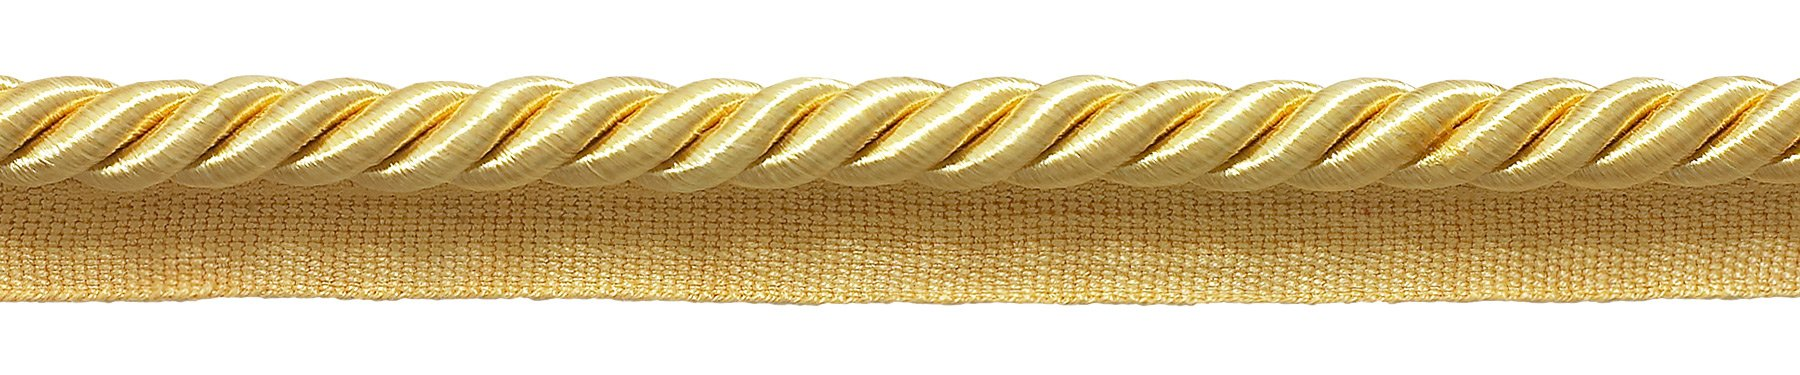 DecoPro Large Light Gold 3/8'' Basic Trim Cord with Sewing Lip, Package of 32.8 Yards (30 Meters), Style# 0038S Color: B7 by DÉCOPRO